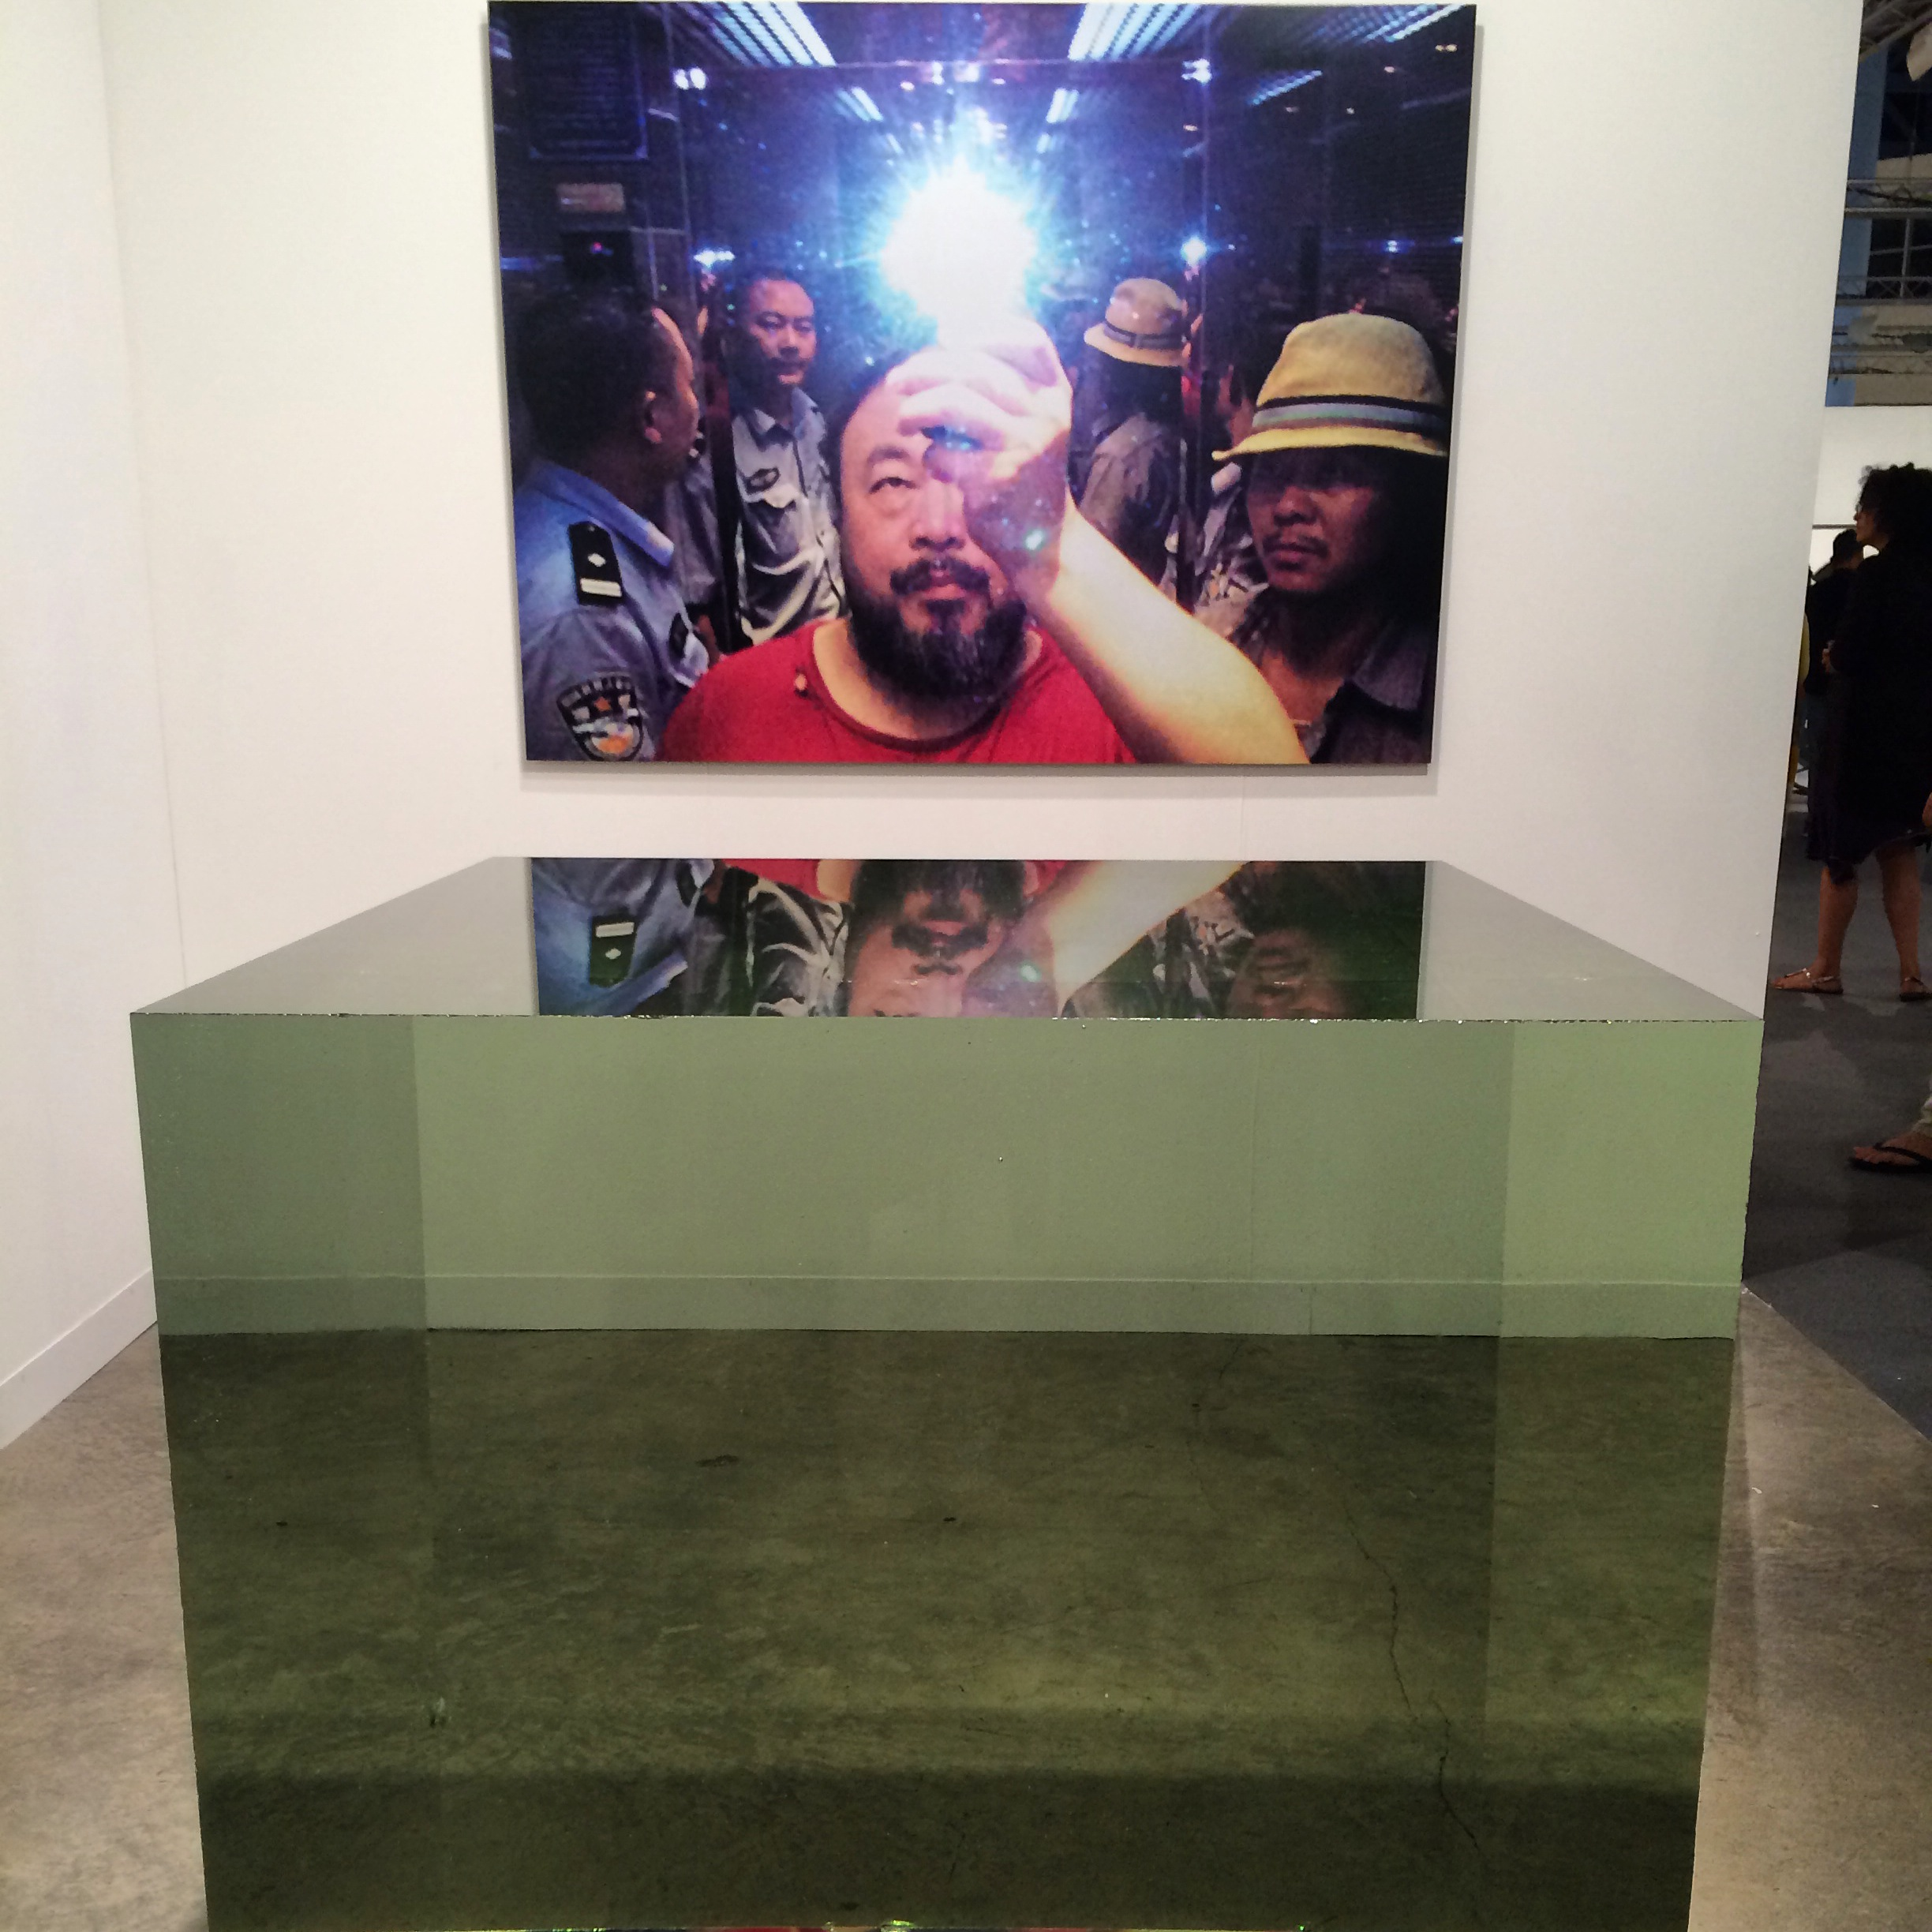 Ai Weiwei. Photograph and Crystal Cube, 2014. Crystal (leaded glass) cube 100 x 100 x 100 cm (1 cubic meter). Singular. Neugerriemschneider, Berlin.  Ai WeiWei's singular photo shows his arrest, taken in elevator with arresting policemen. His hand and the flash cover the bruises on his face from the arrest. Both works sold, separately, at very respectable prices. Ai WeiWei and other respected contemporary artists who consider glass as a medium of expression bridge the interesting gap of contemporary glass to contemporary fine art.